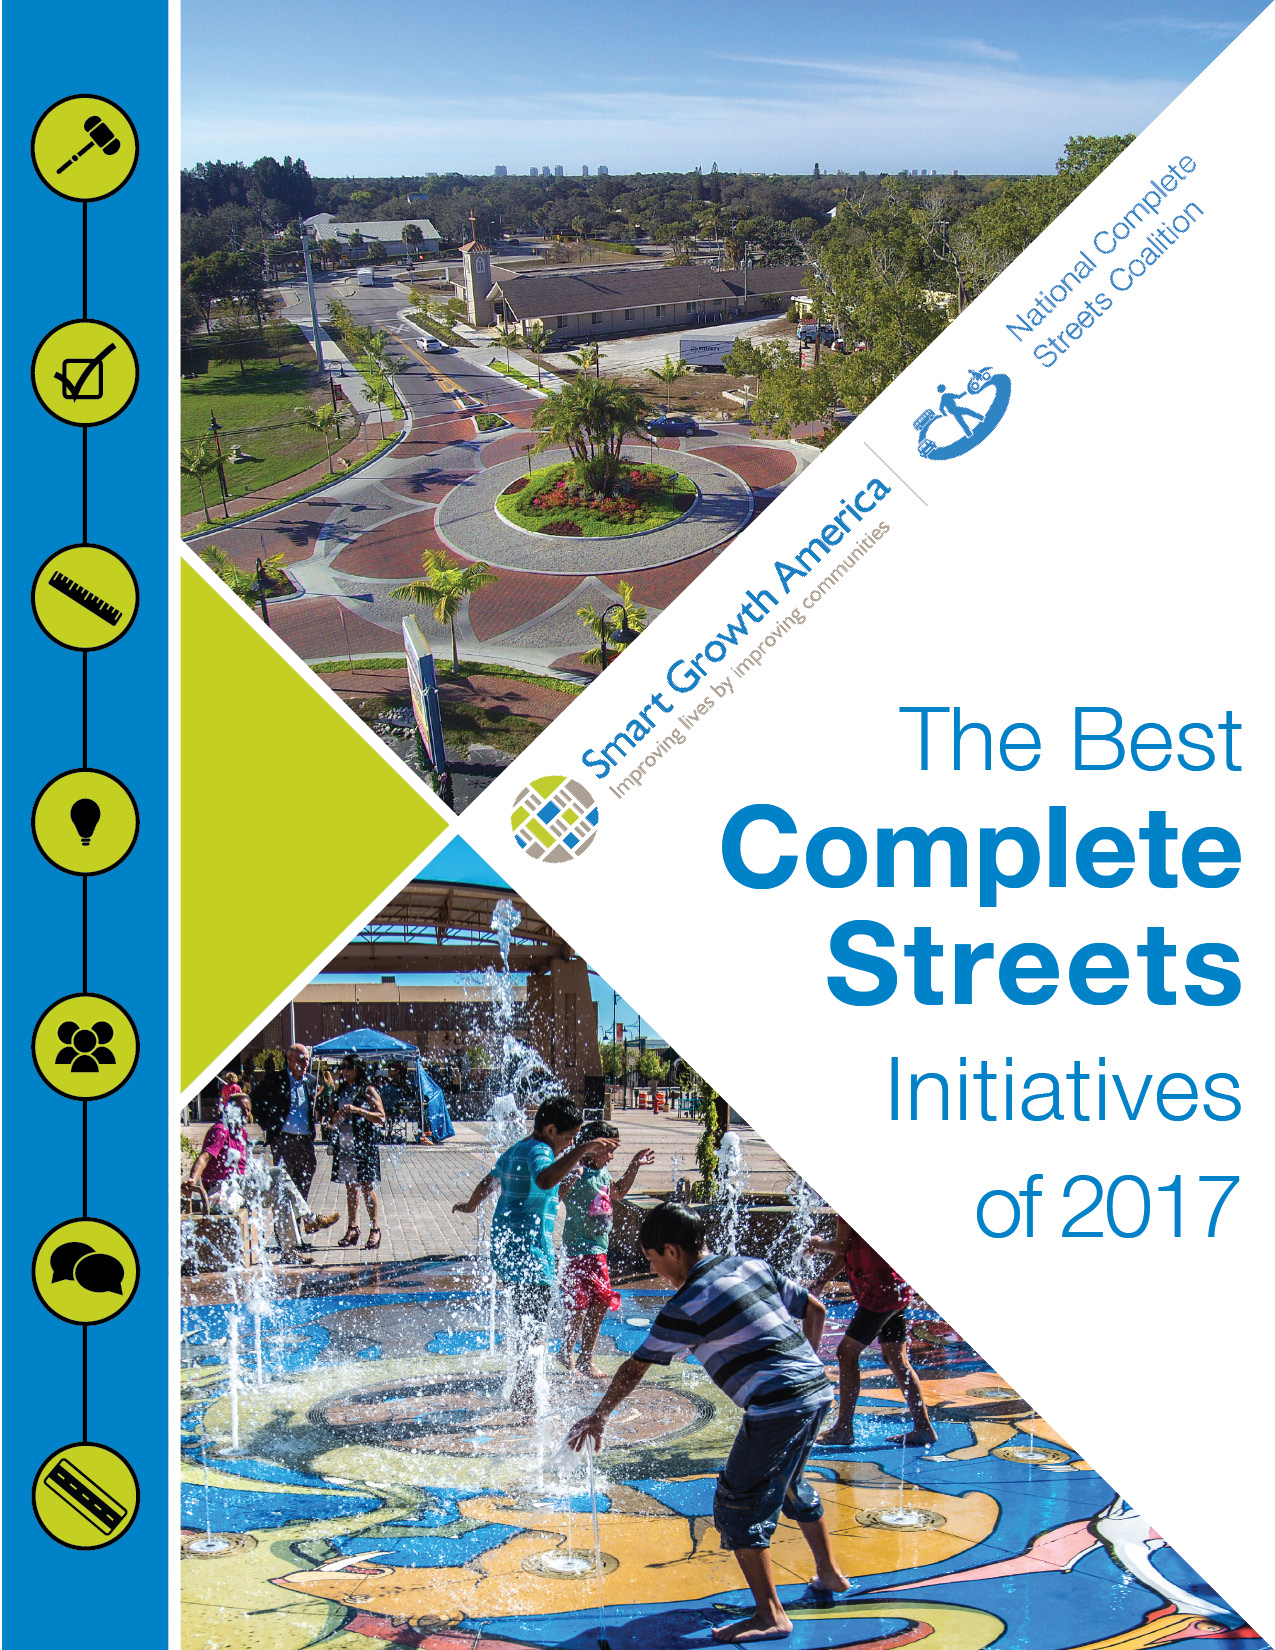 The Best Complete Streets Initiatives of 2017